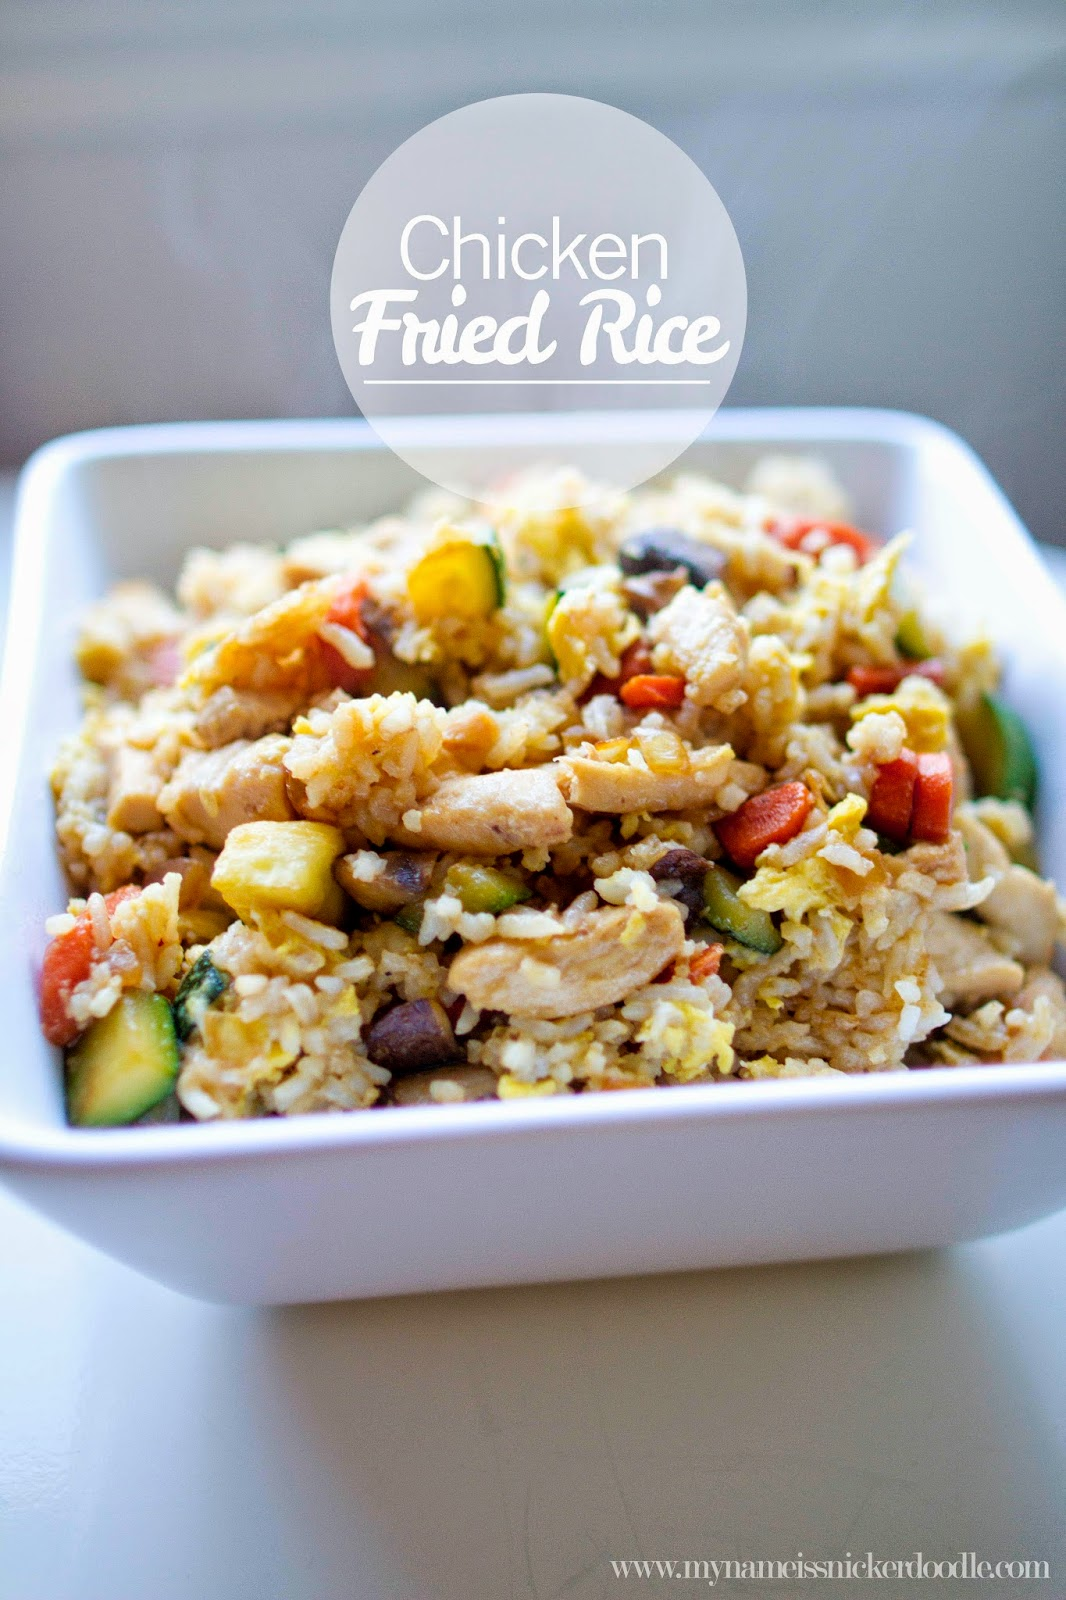 Chicken fried rice my name is snickerdoodle super easy and delicious chicken fried rice recipe perfect for using leftover rice ccuart Image collections